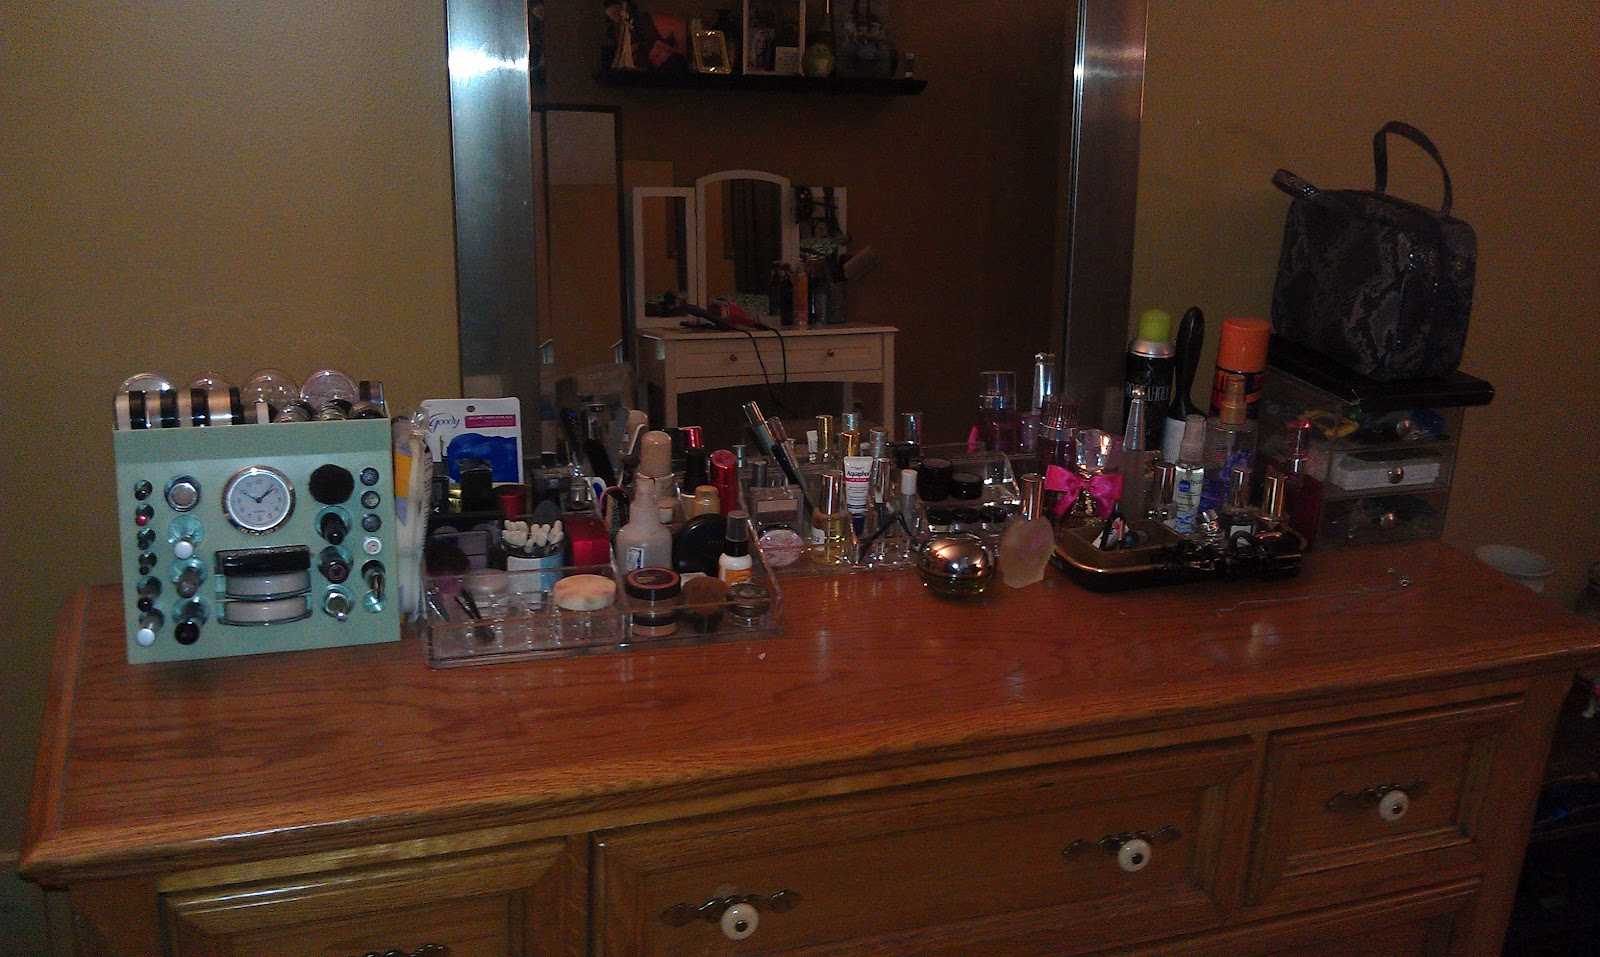 And Ended Up Organizing My Dresser Top Where All Makeup Is When I Say Organized Mean Everything Facing The Same Direction